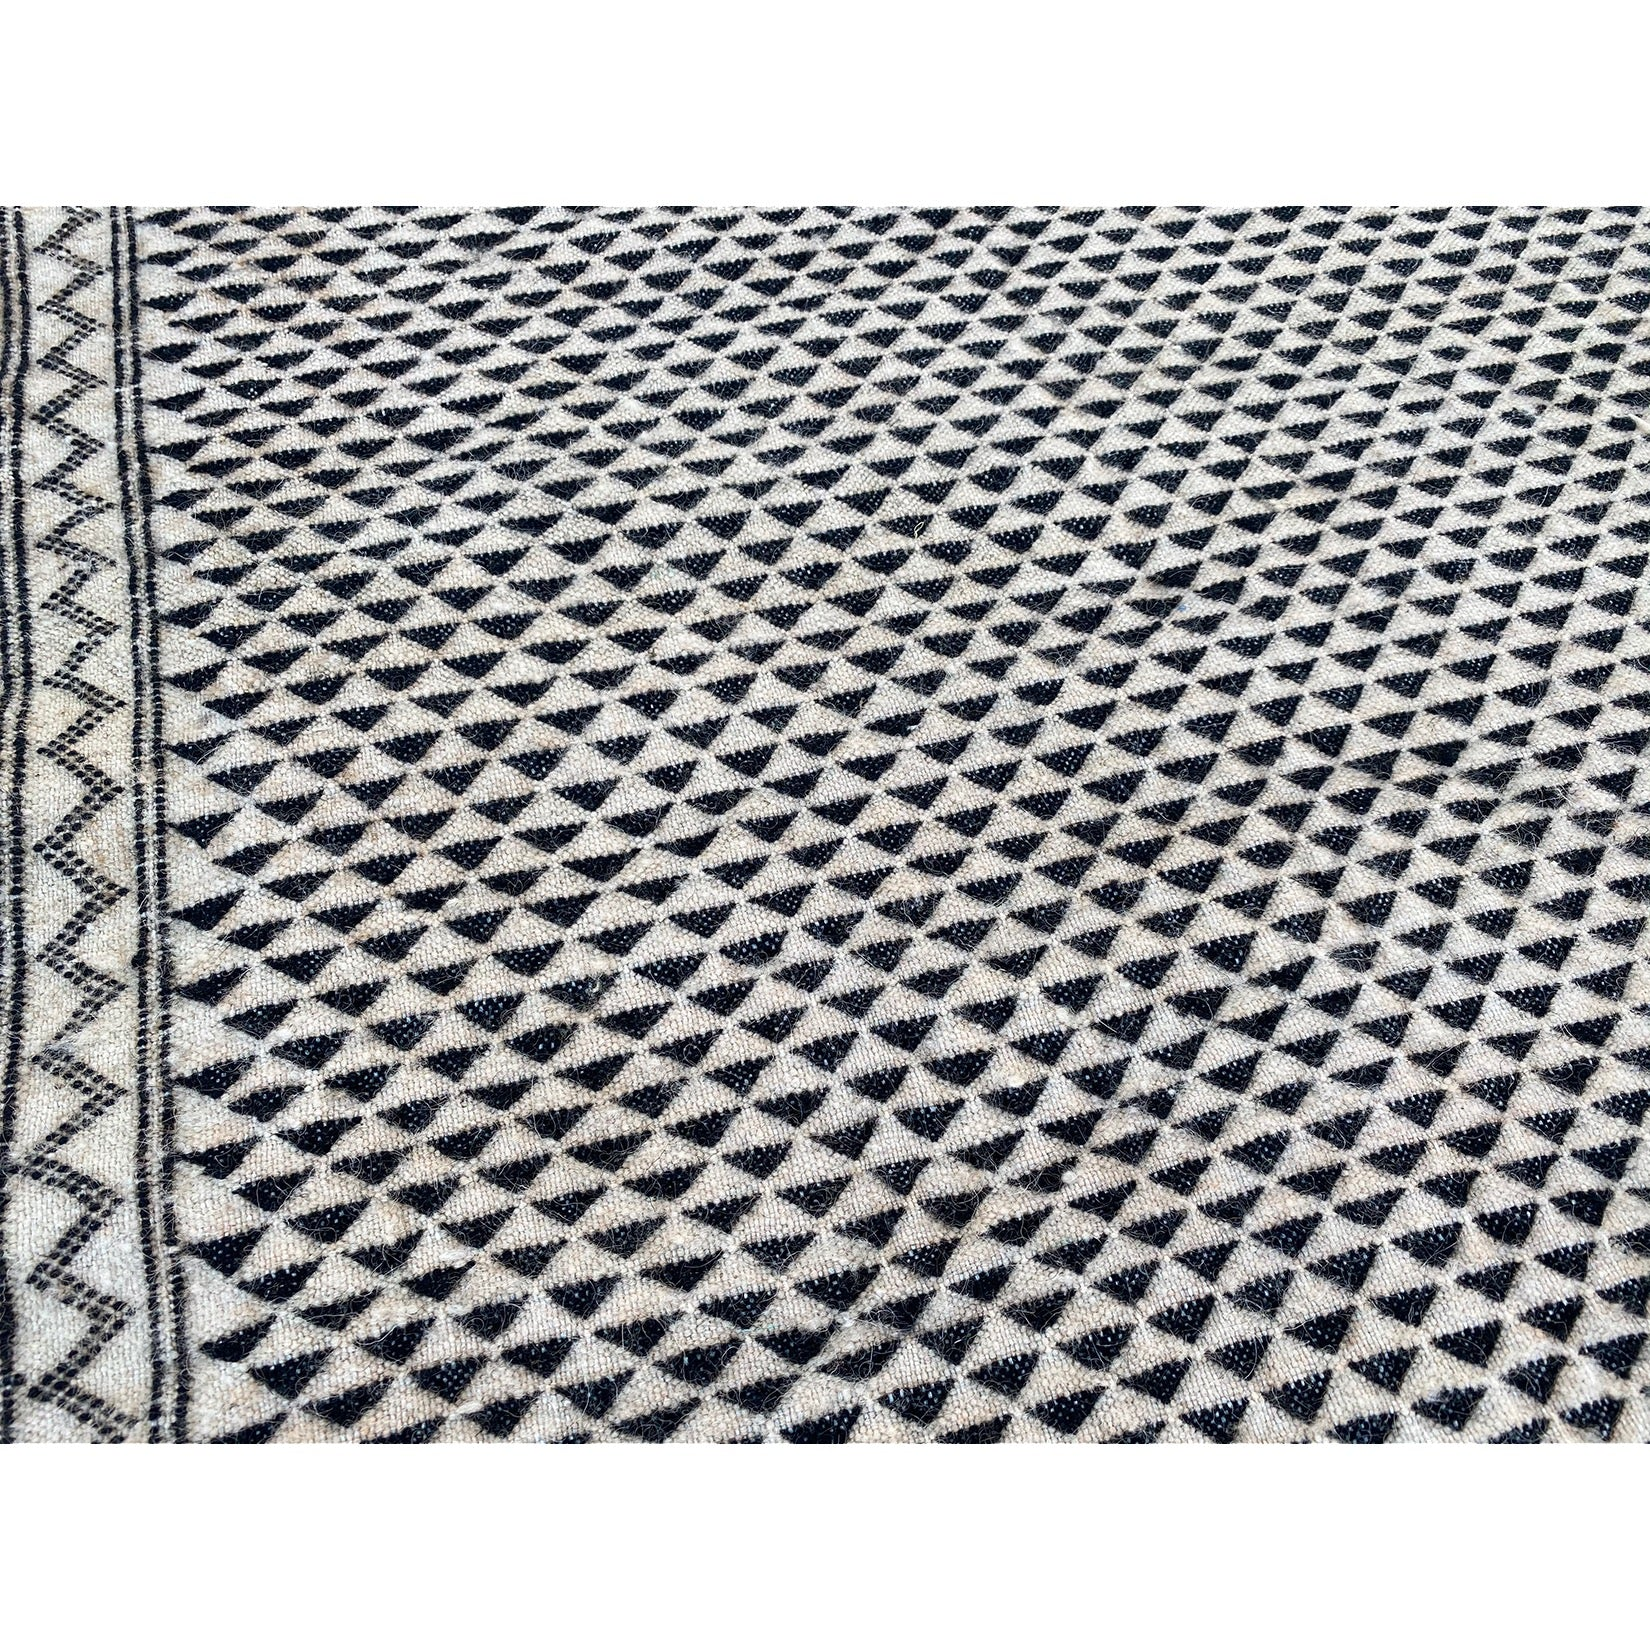 Mid century modern white Moroccan flatweave rug with black details - Kantara | Moroccan Rugs